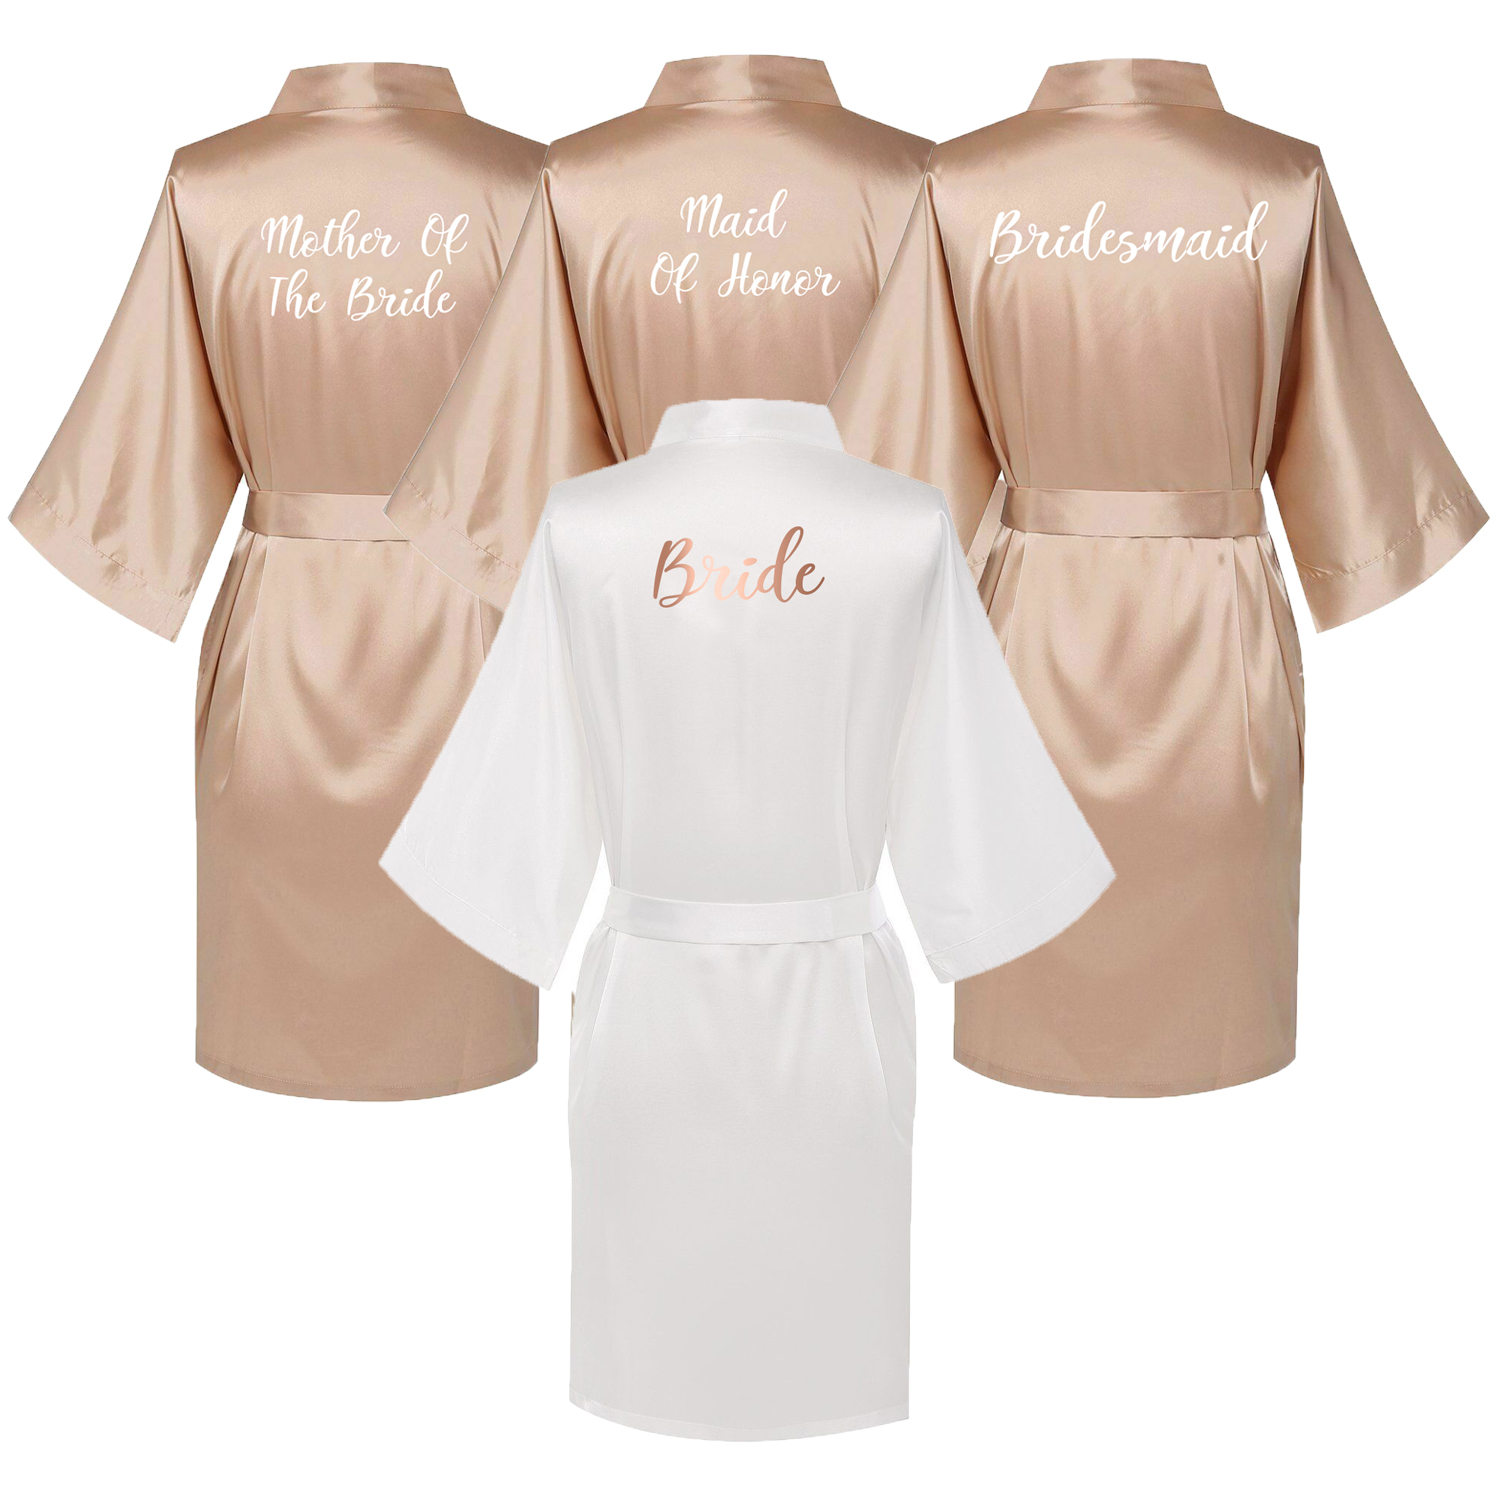 Owiter Satin Silk Robes Plus Size Wedding BathRobe Bride Bridesmaid Dress Gown Women Clothing Sleepwear Maid Of Honor Rose Gold